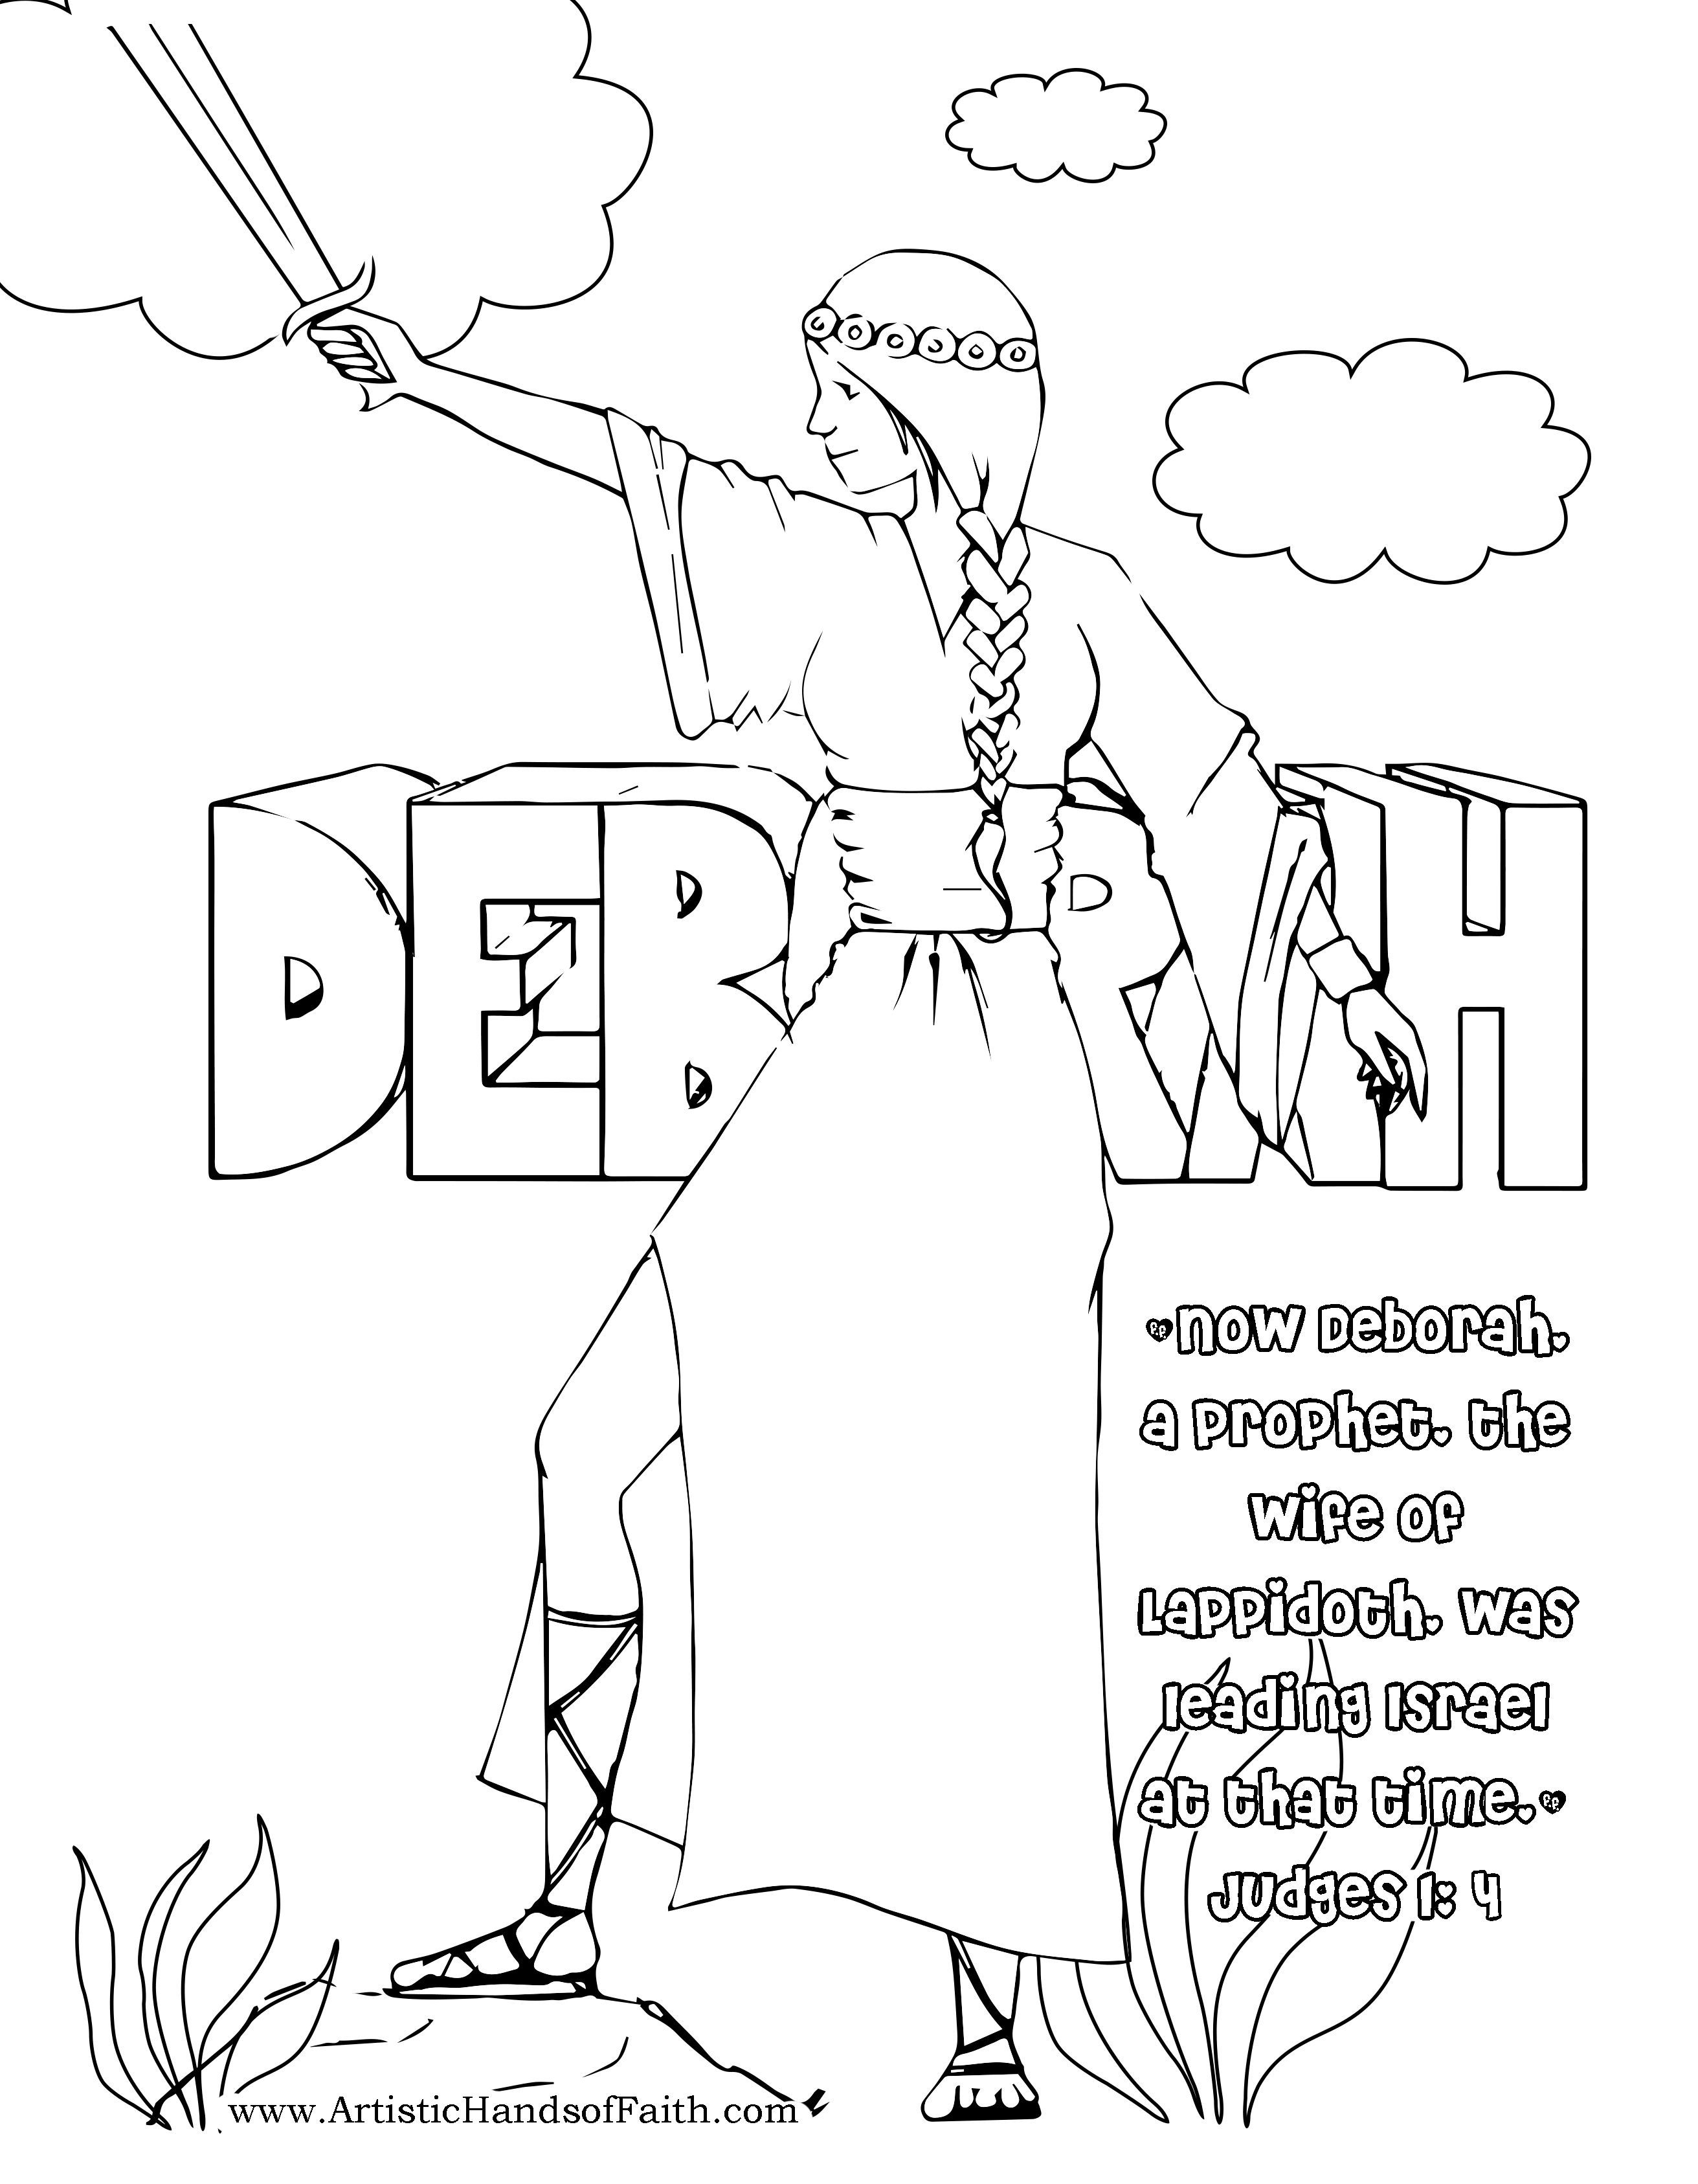 Free Coloring Page Deborah Of The Bible Judge Of Israel Bible Coloring Pages Bible Coloring Bible For Kids